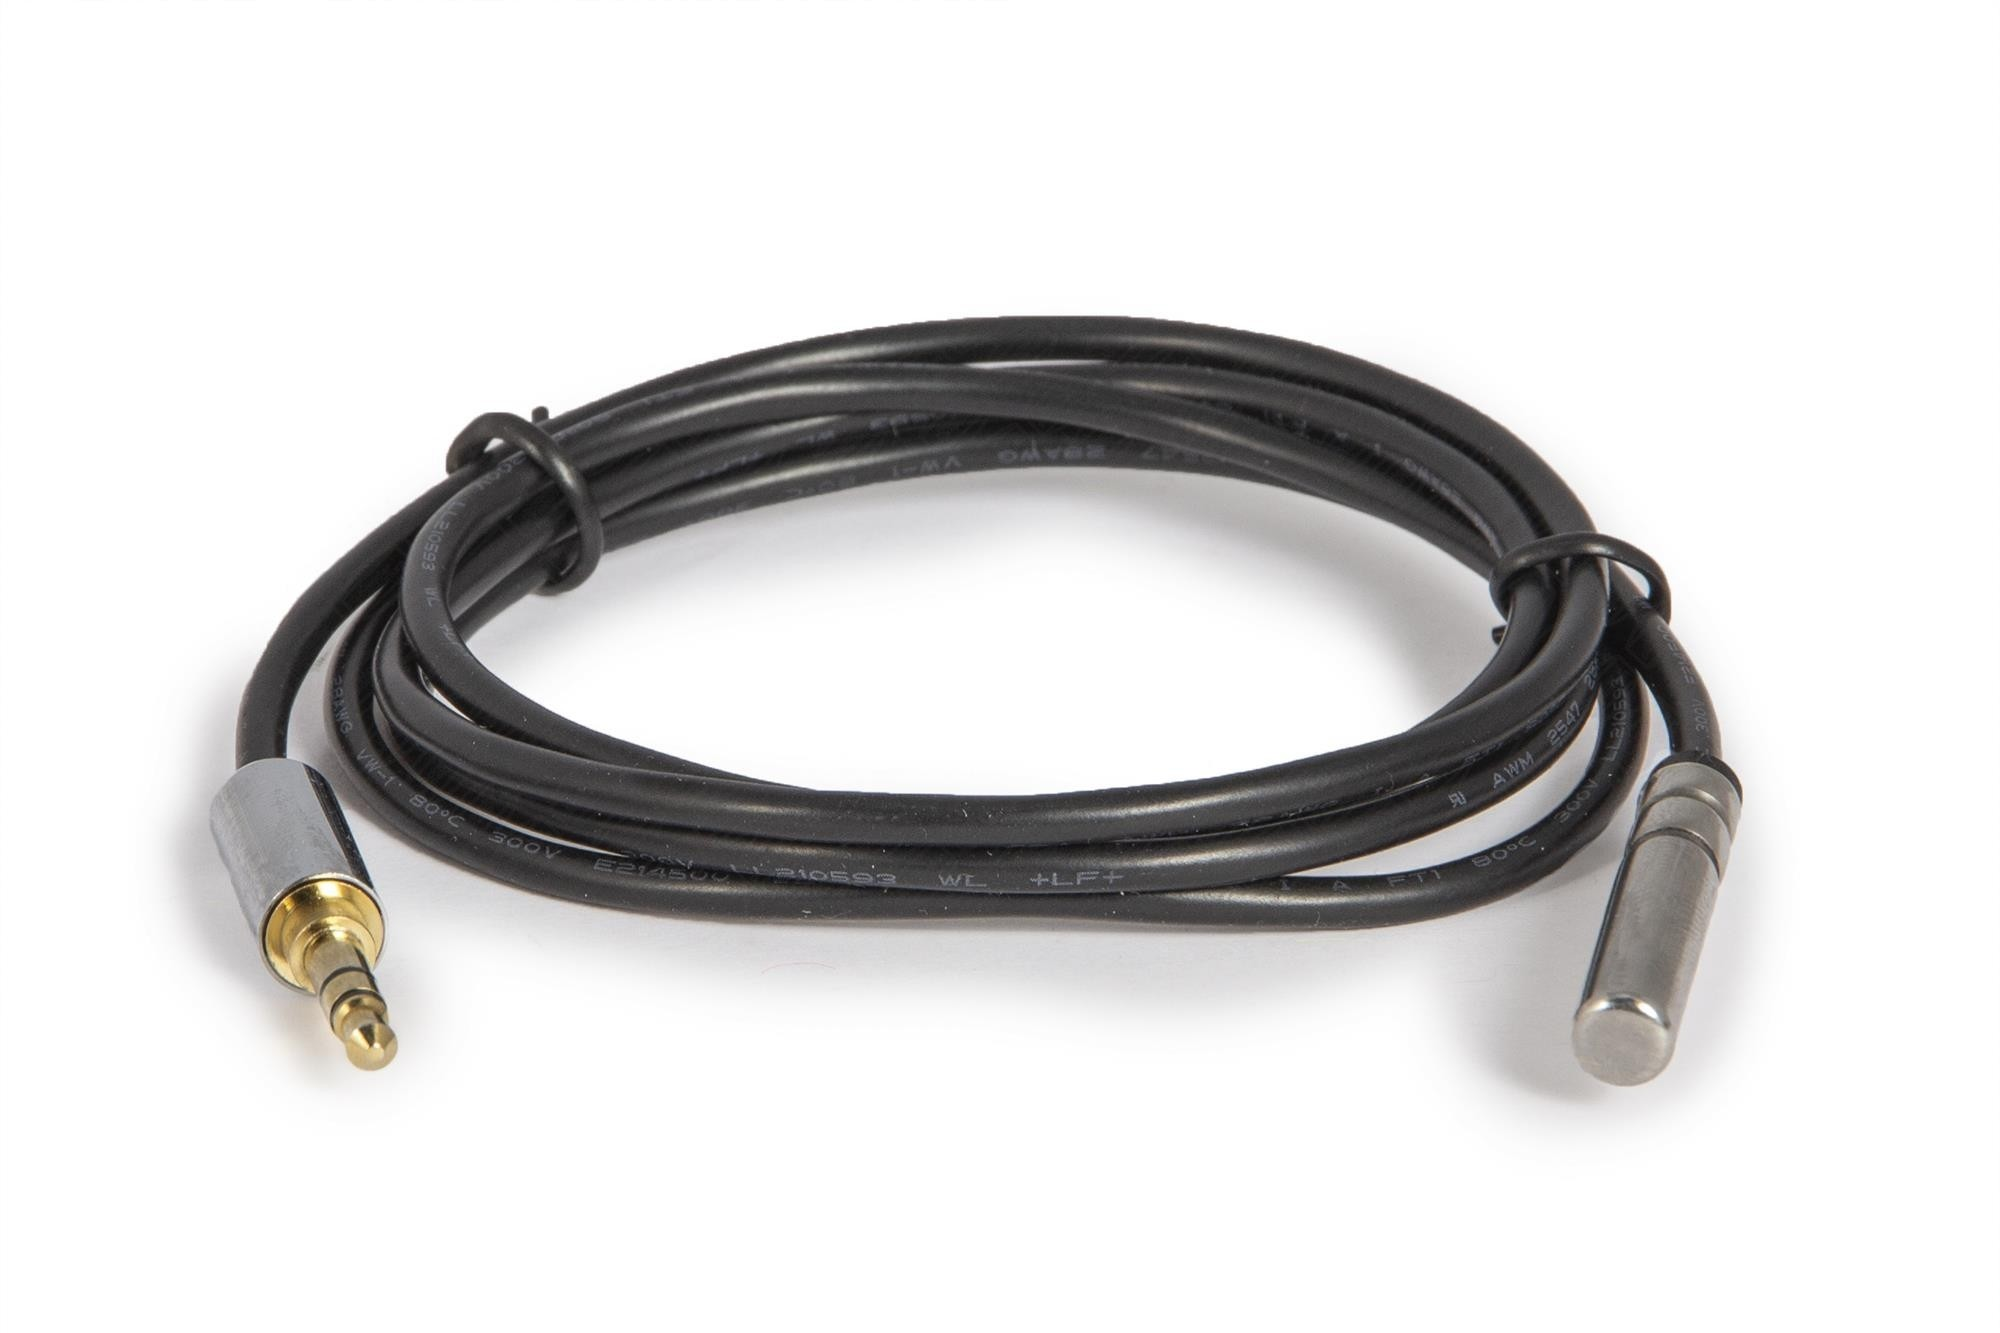 Steeldrive II Temperature sensor, cable included